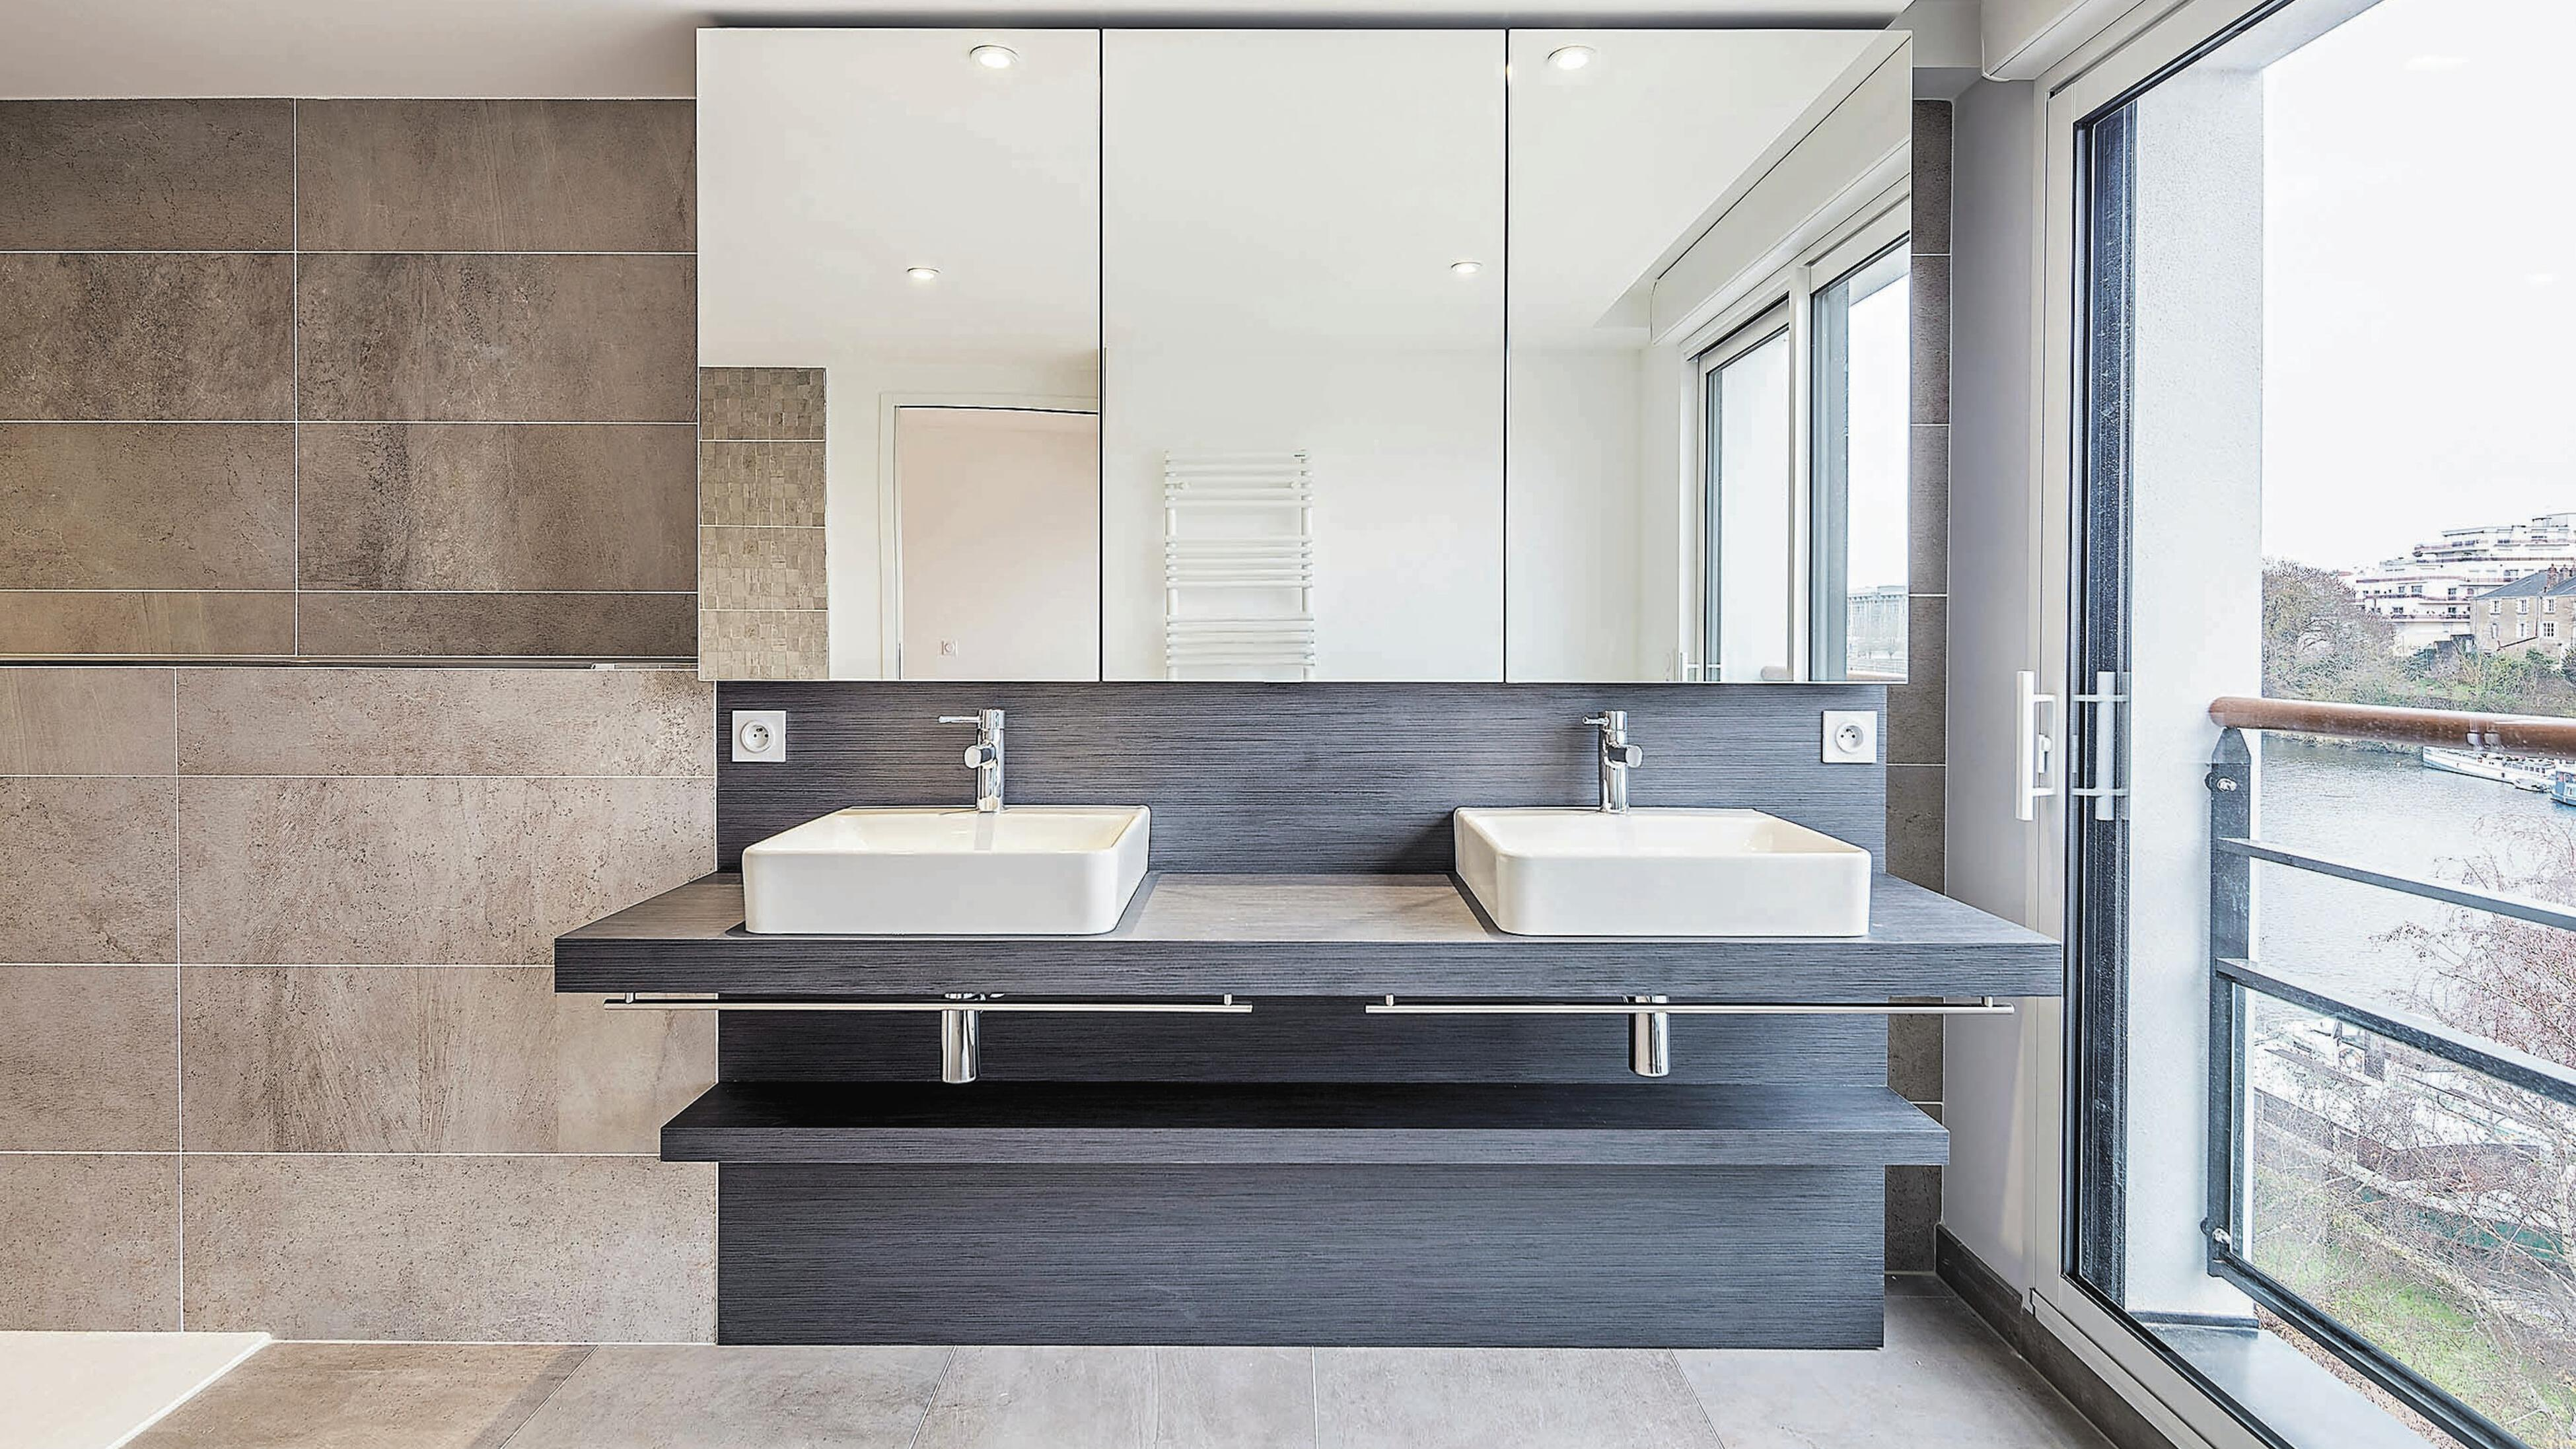 All-in-one bathroom solution